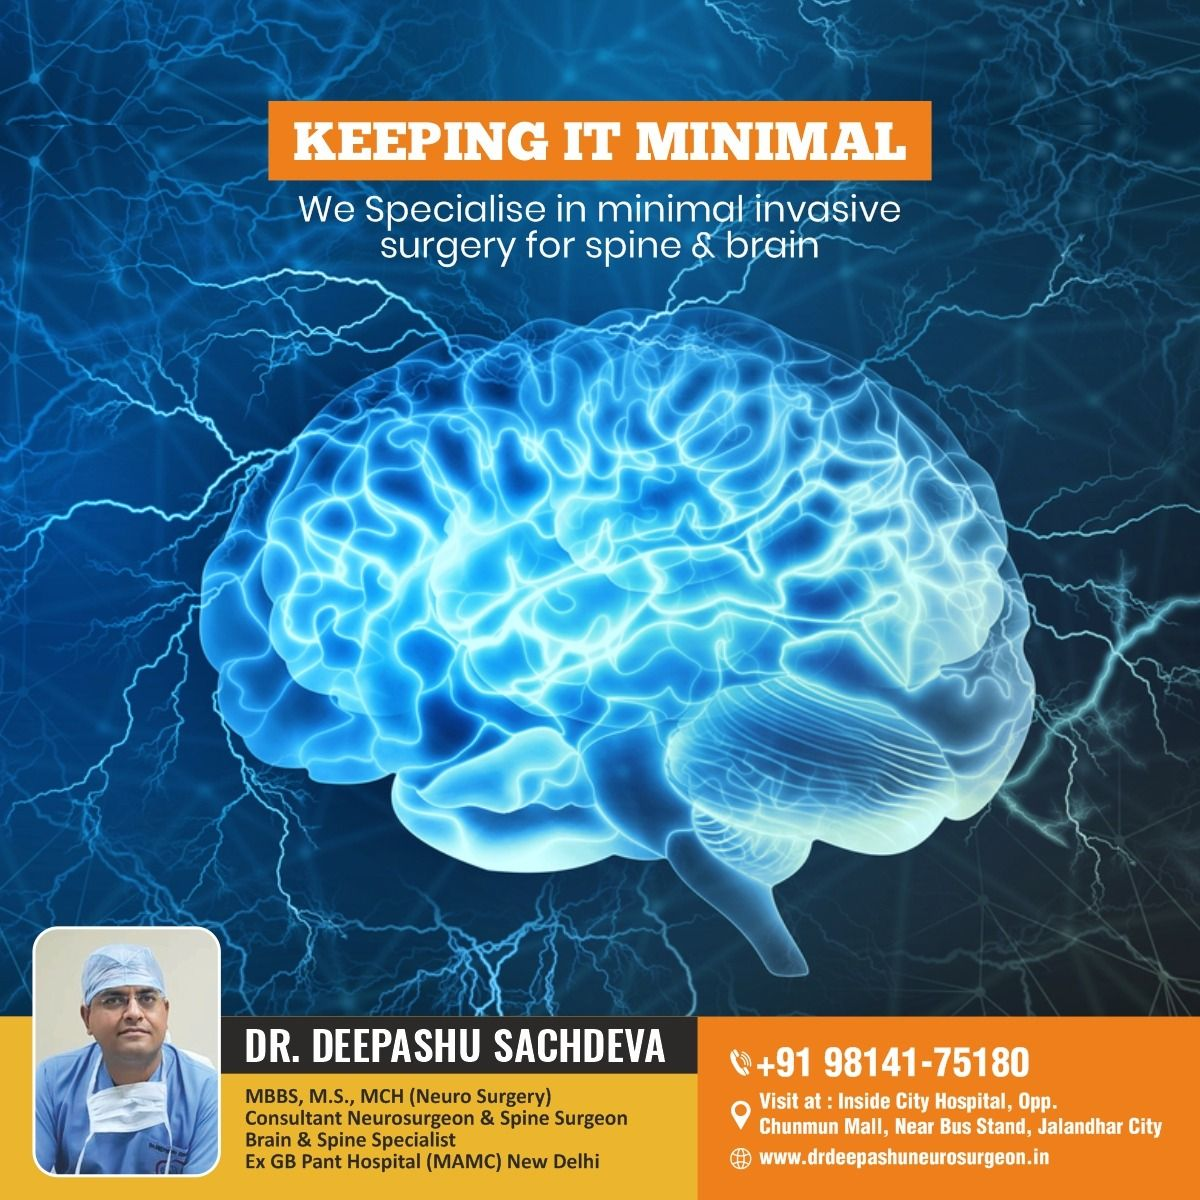 We Specialise in Minimal Invasive Surgery for Brain & Spine. Get An Appointment with... 𝗗𝗿. 𝗗𝗲𝗲𝗽𝗮𝘀𝗵𝘂...